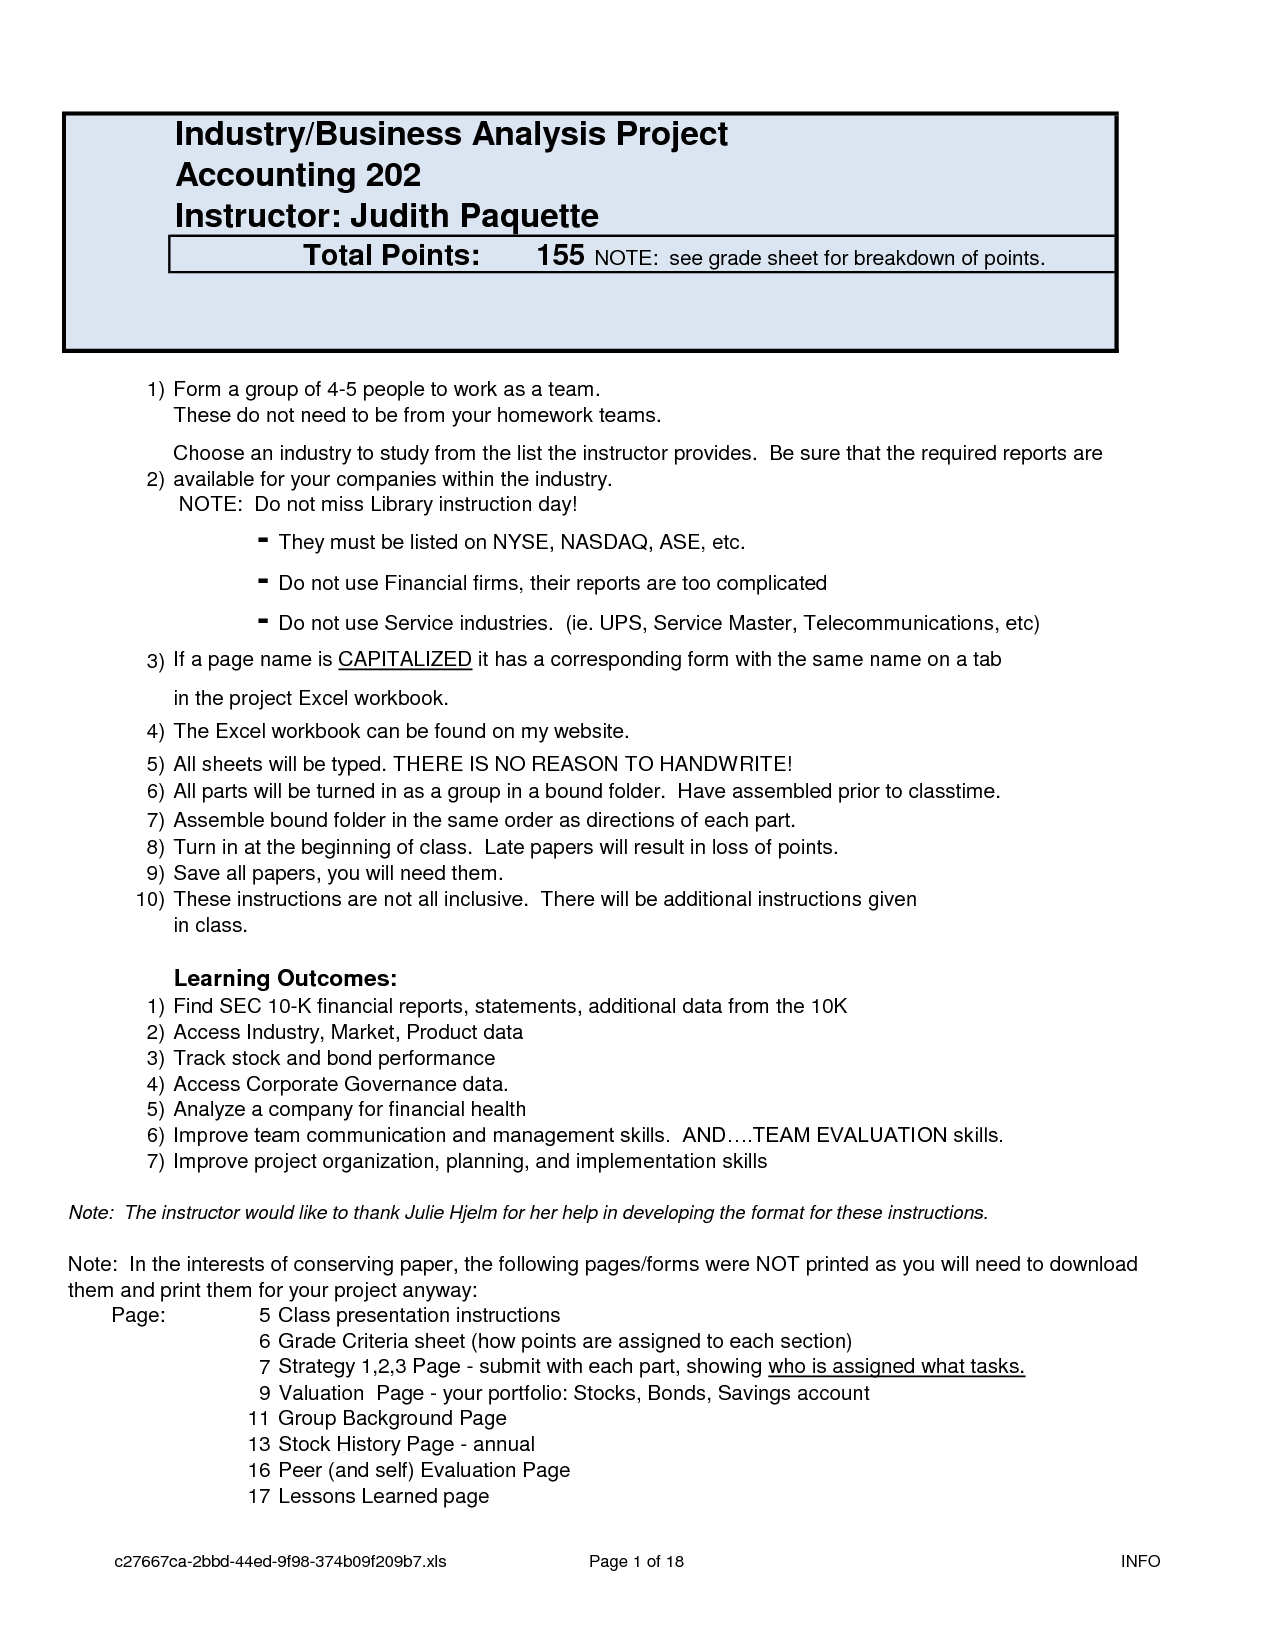 Business Analysis Project form Business analysis